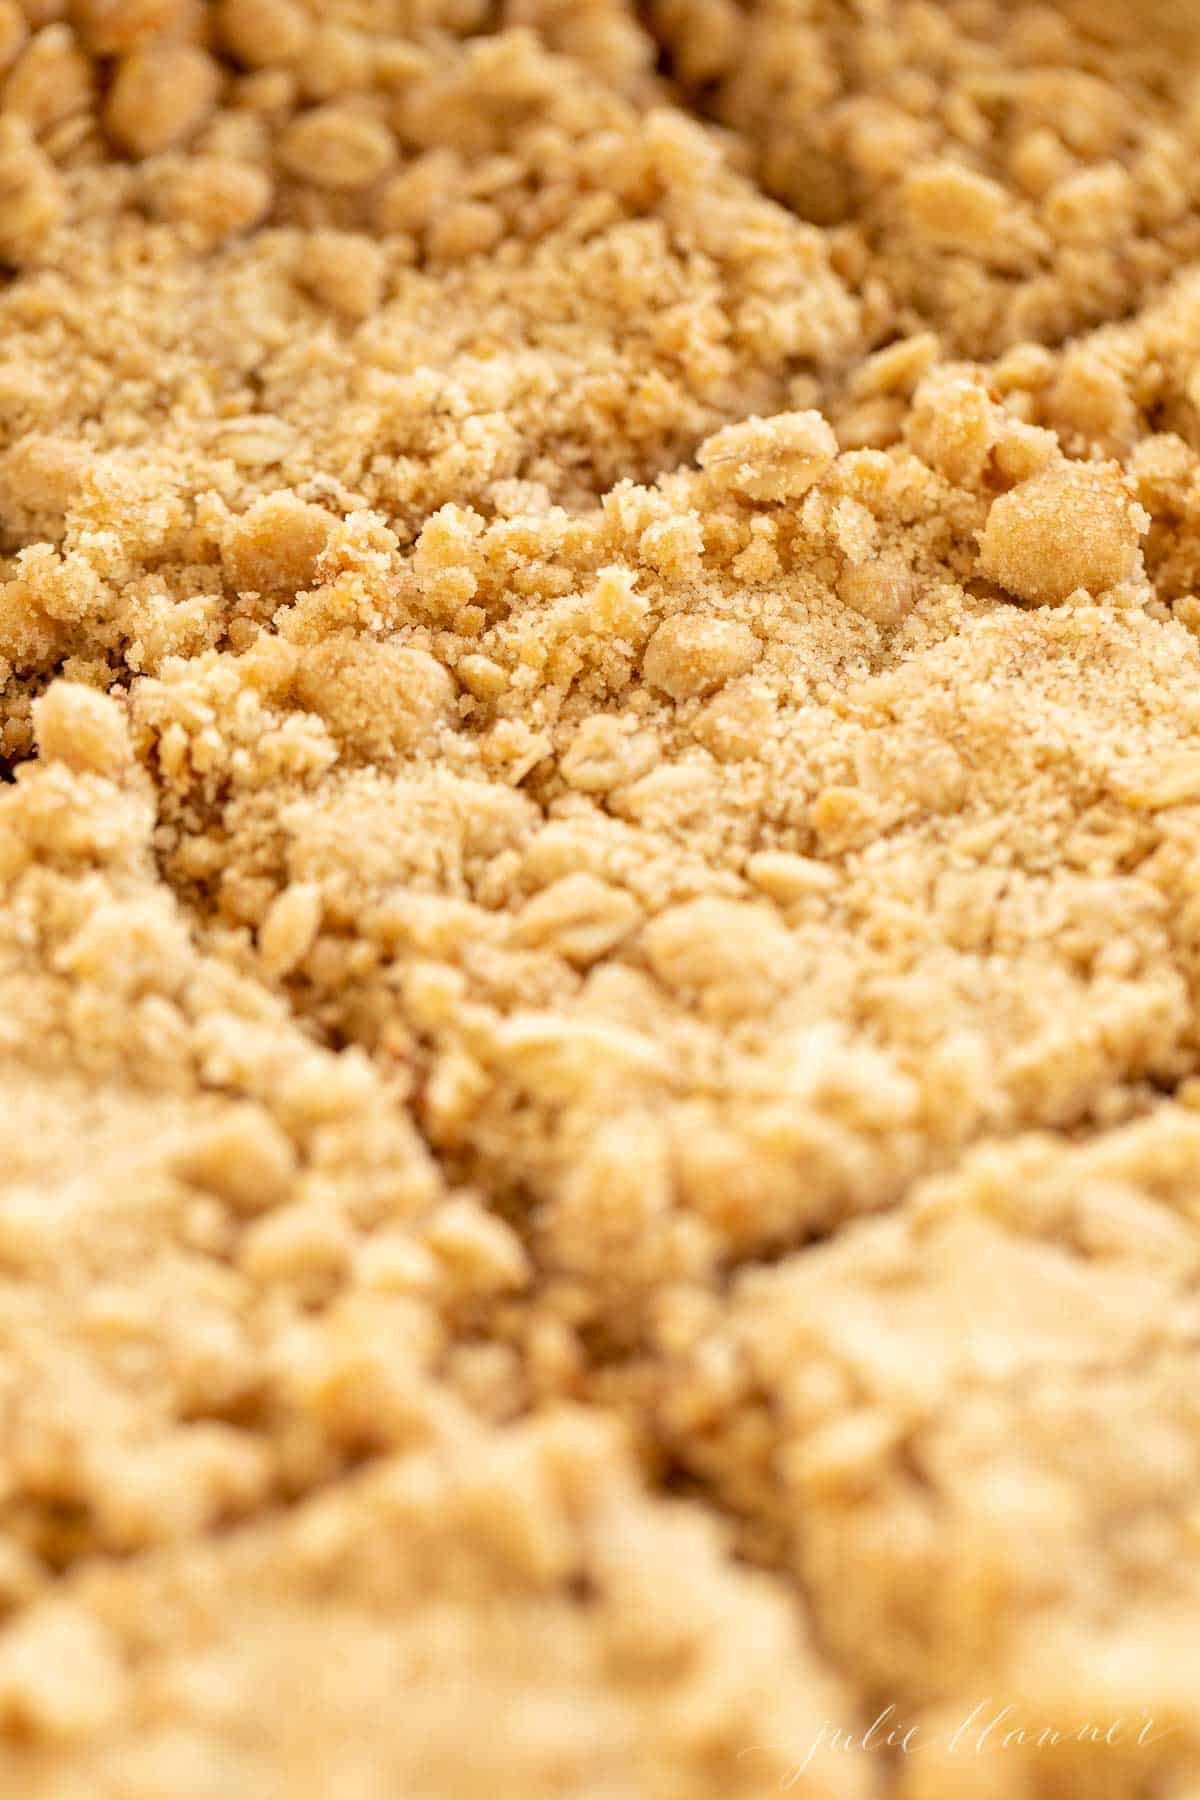 close up of sliced bars with crumble